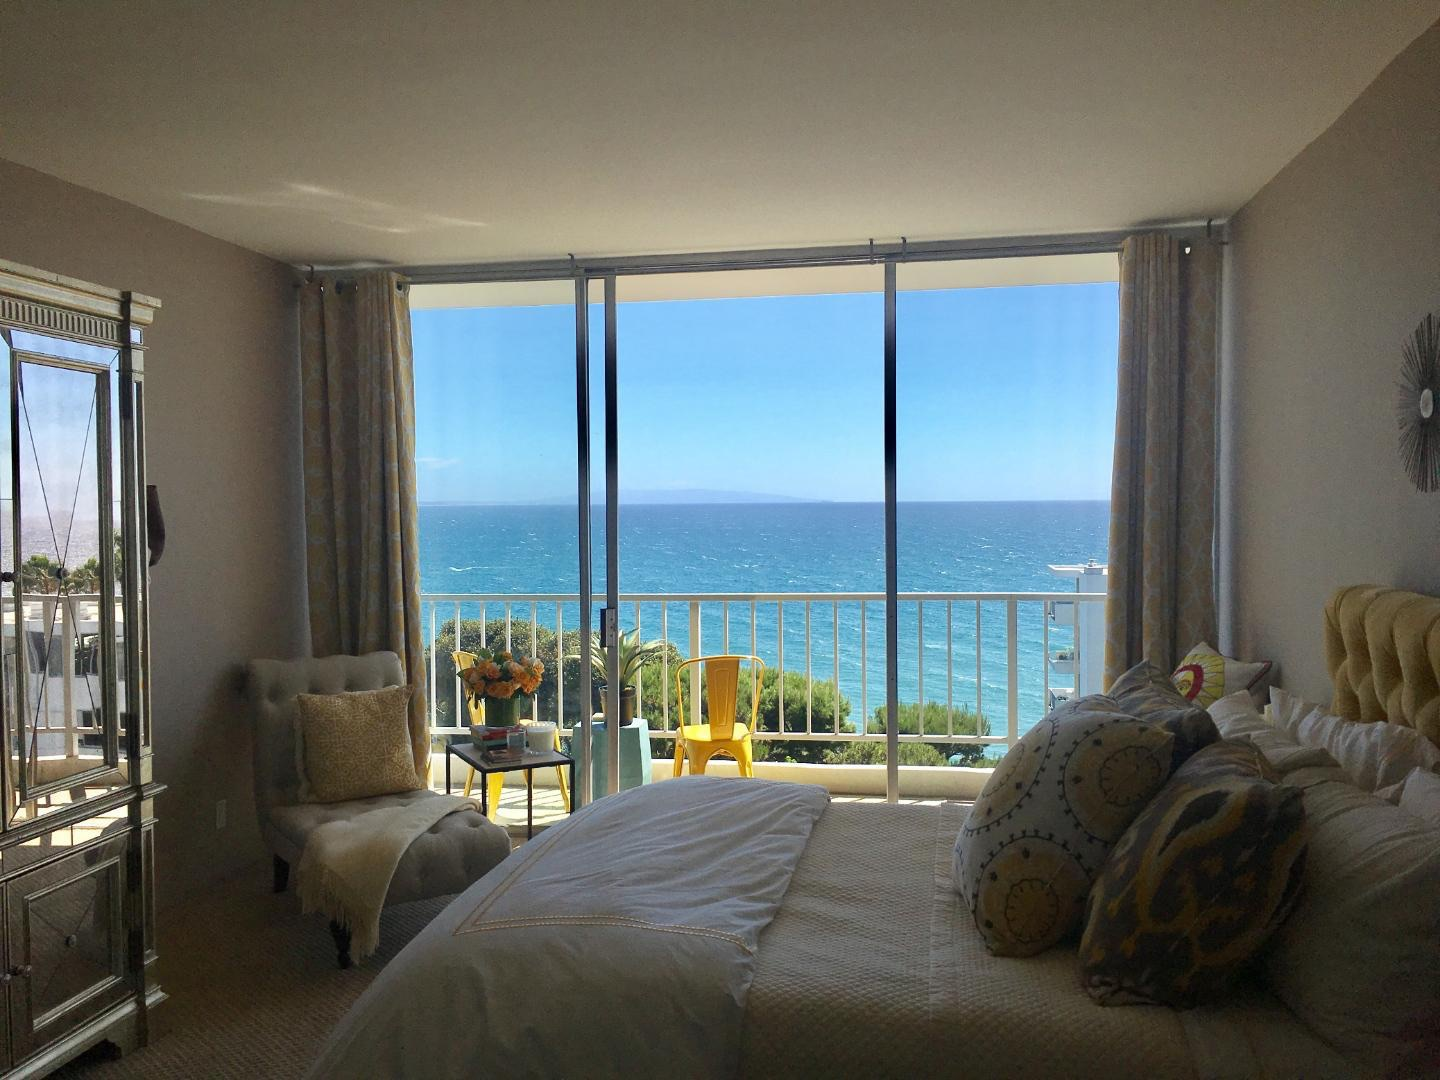 004.1 Furnished 17350 West Sunset Boulevard For Sale Lease The Malibu Life Team Luxury Real Estate.JPG